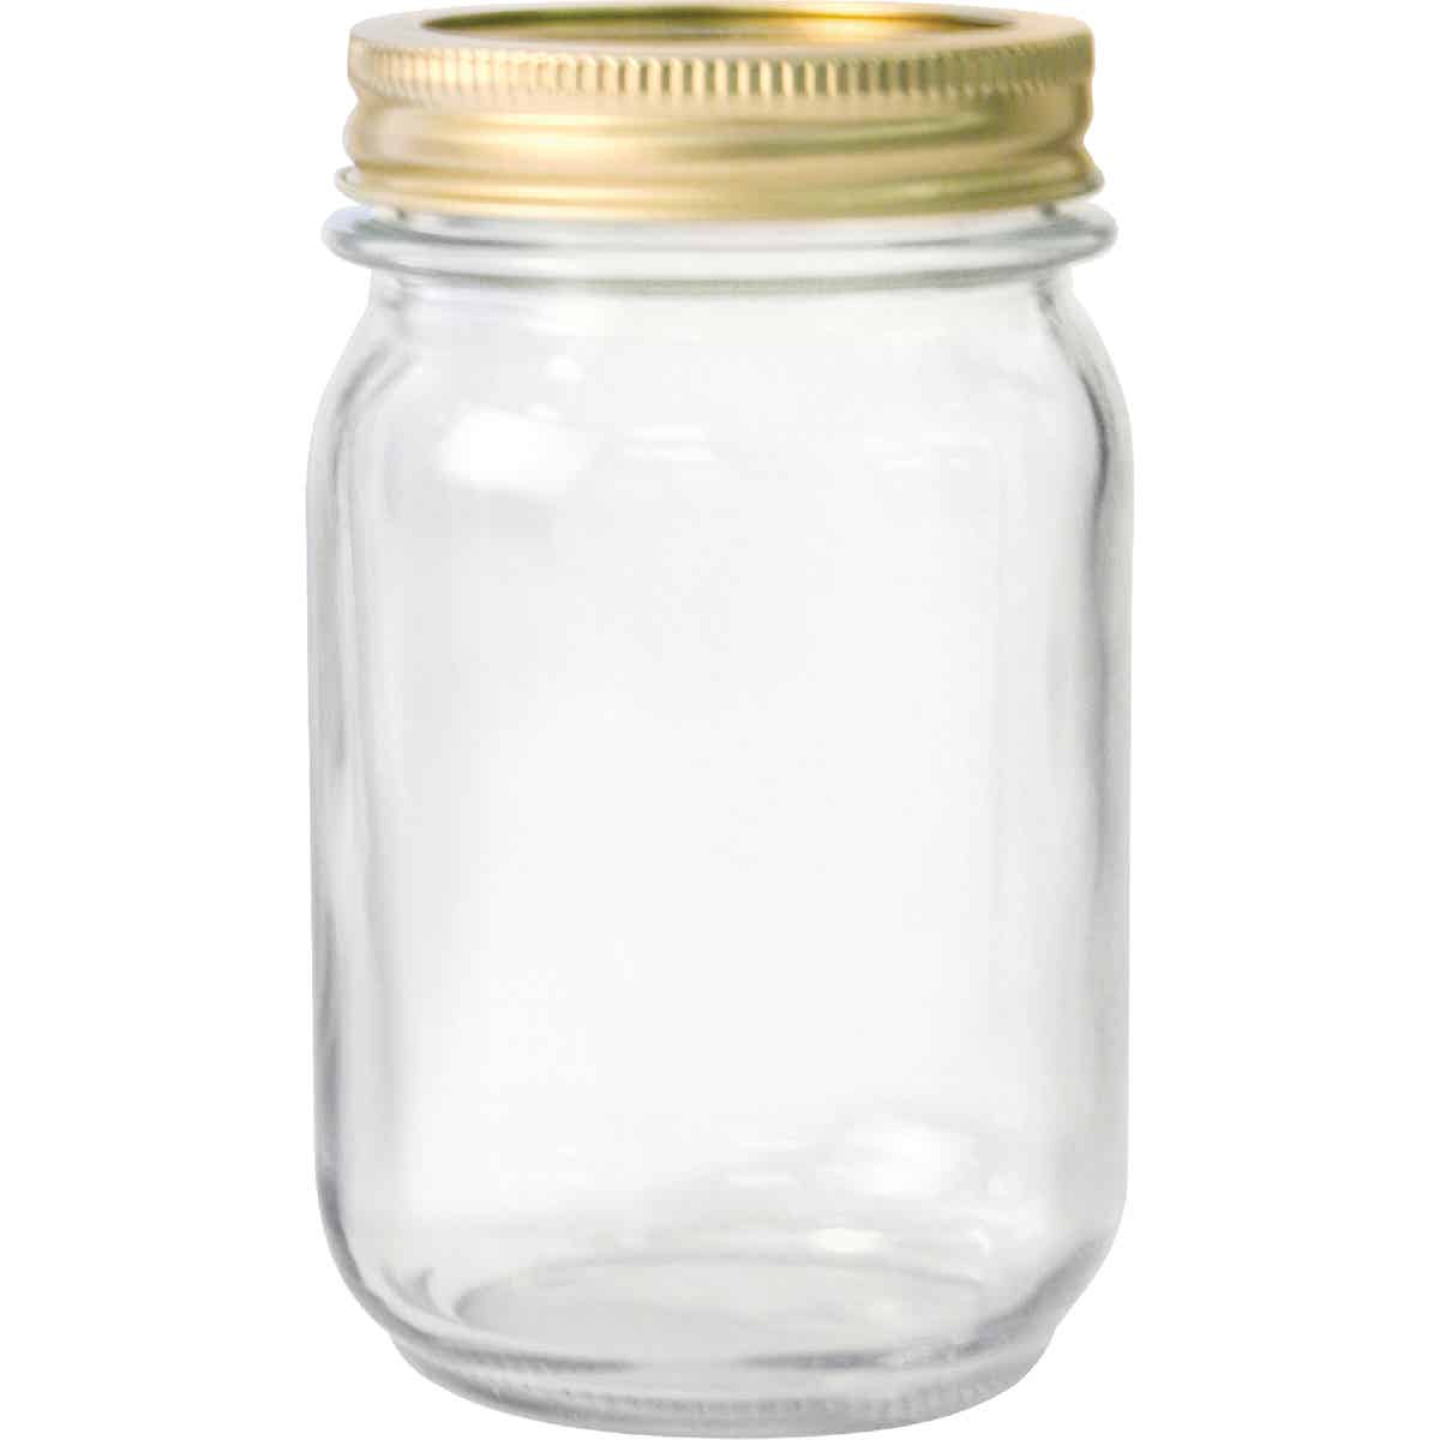 Anchor Hocking 1 Pint Canning Jar (12-Count) Image 1